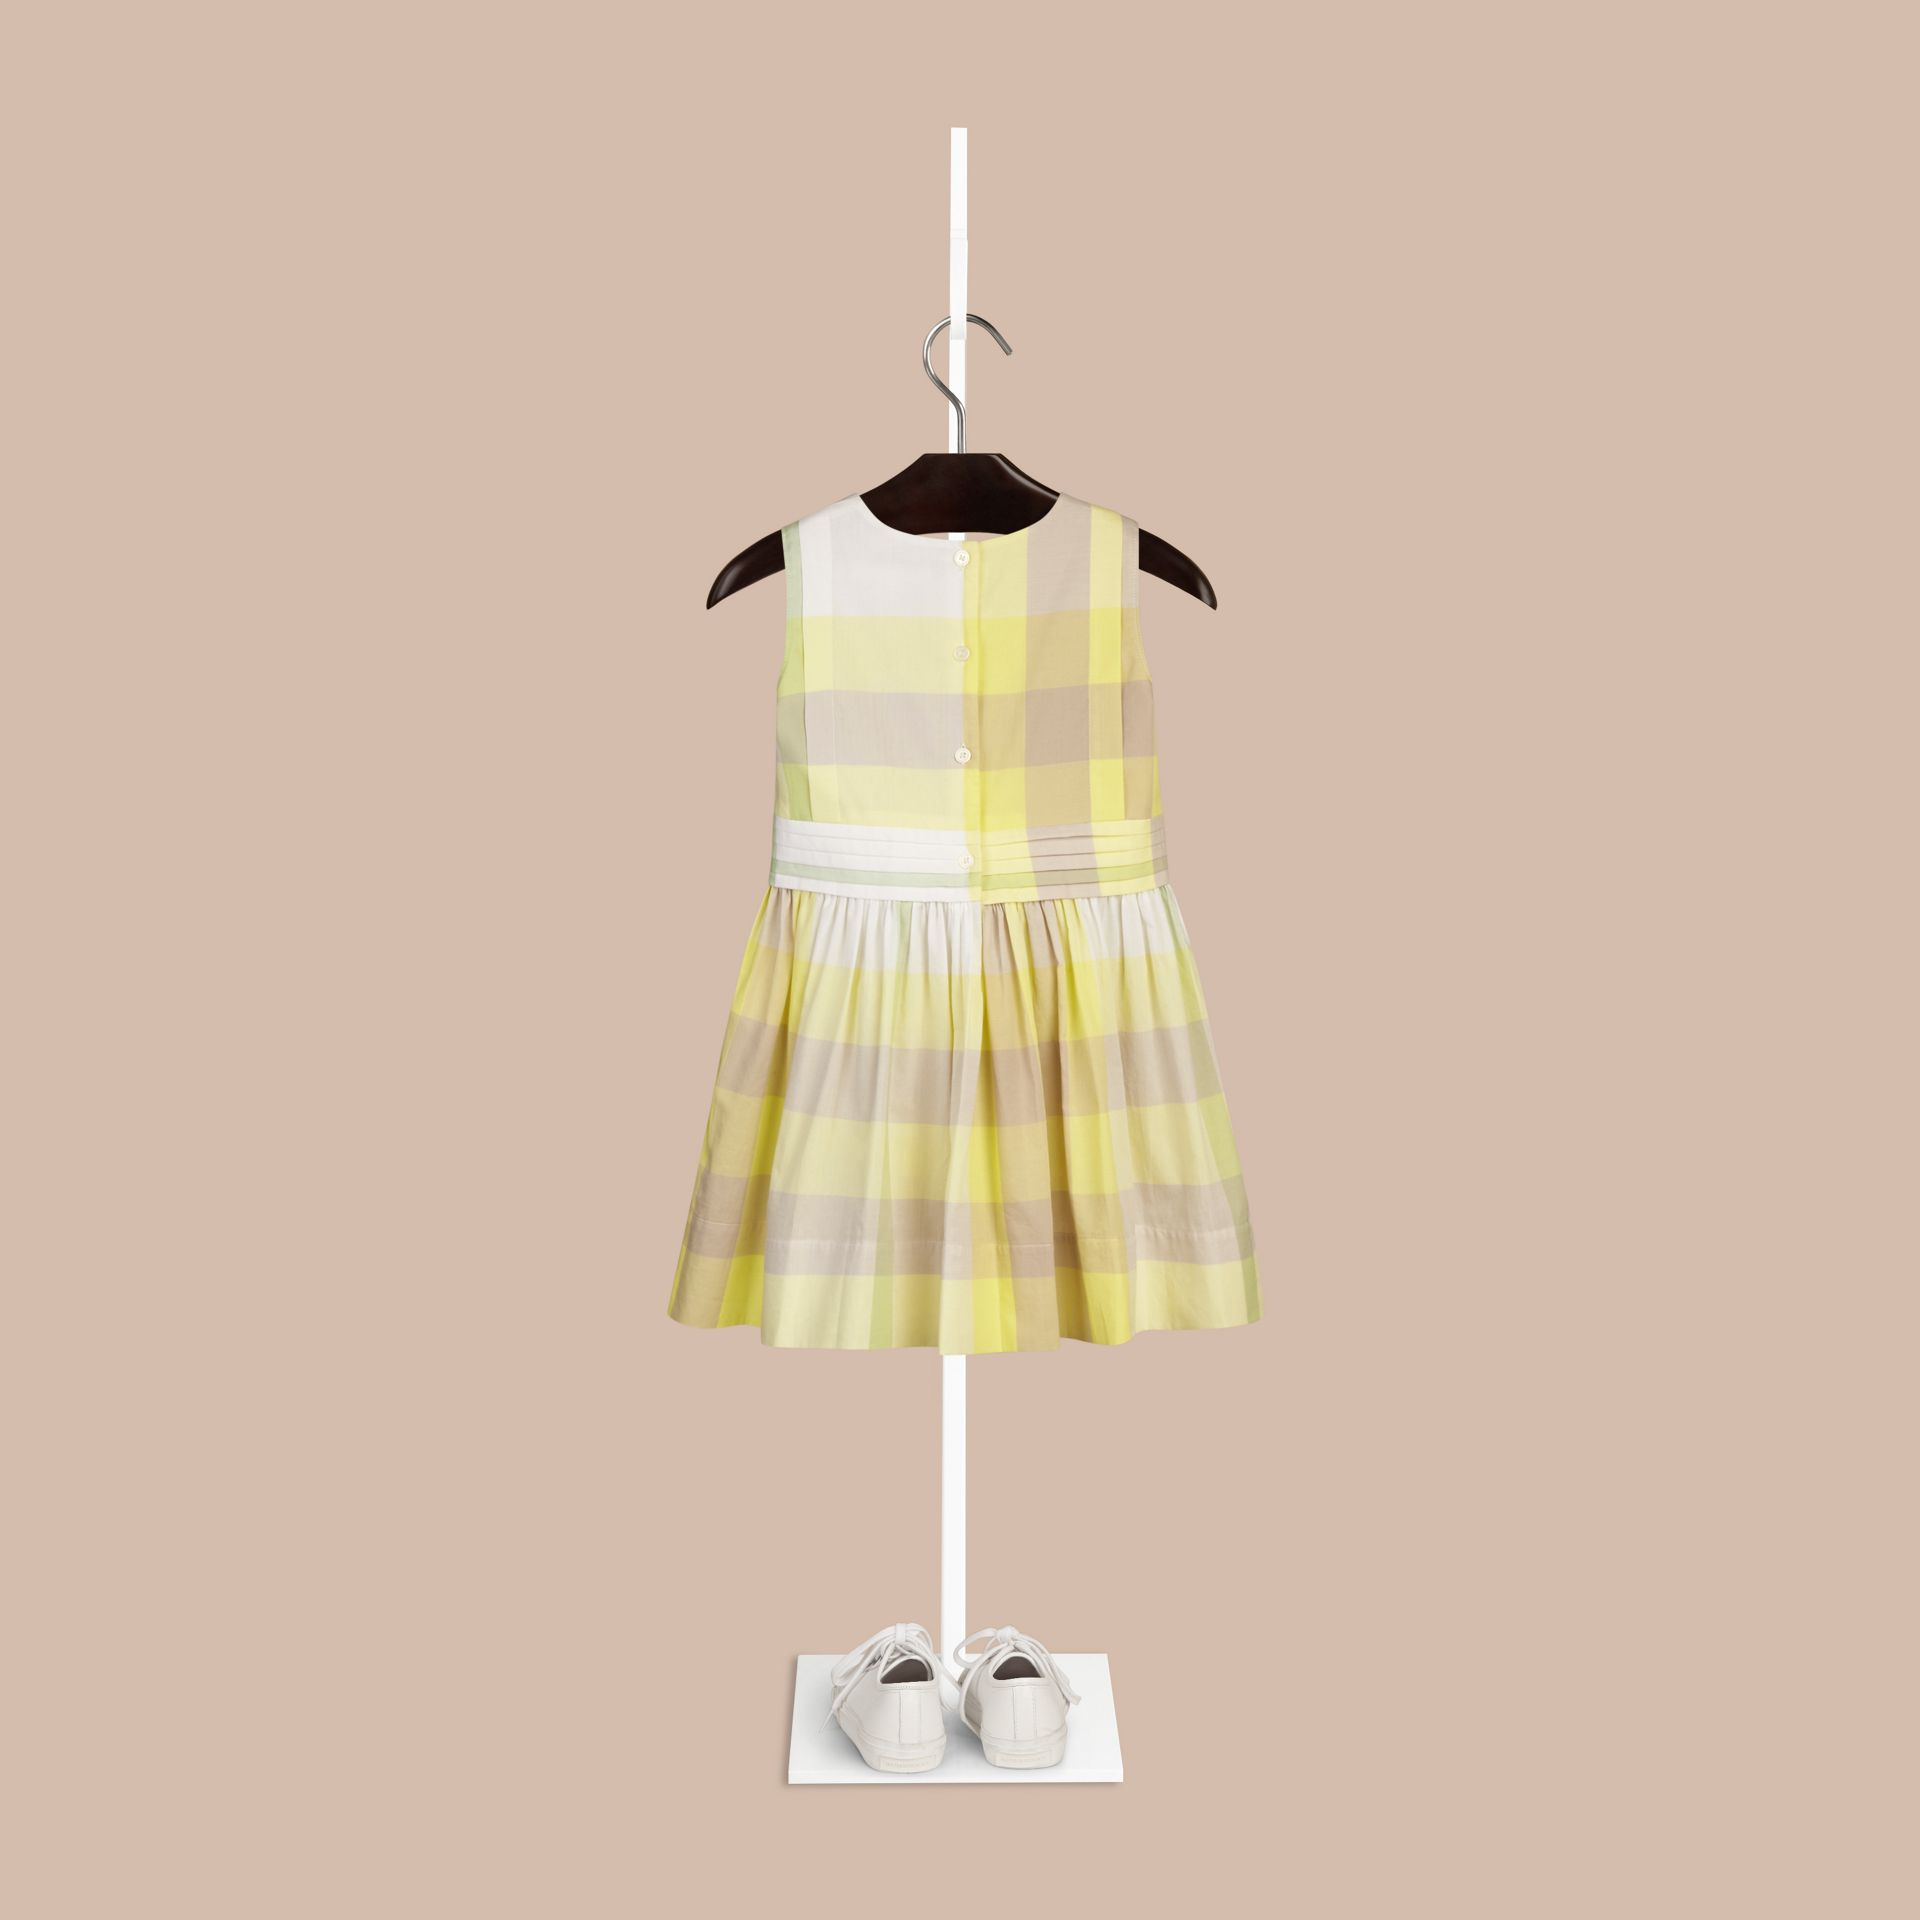 Pale lemon Sleeveless Check Cotton Dress Pale Lemon - gallery image 2